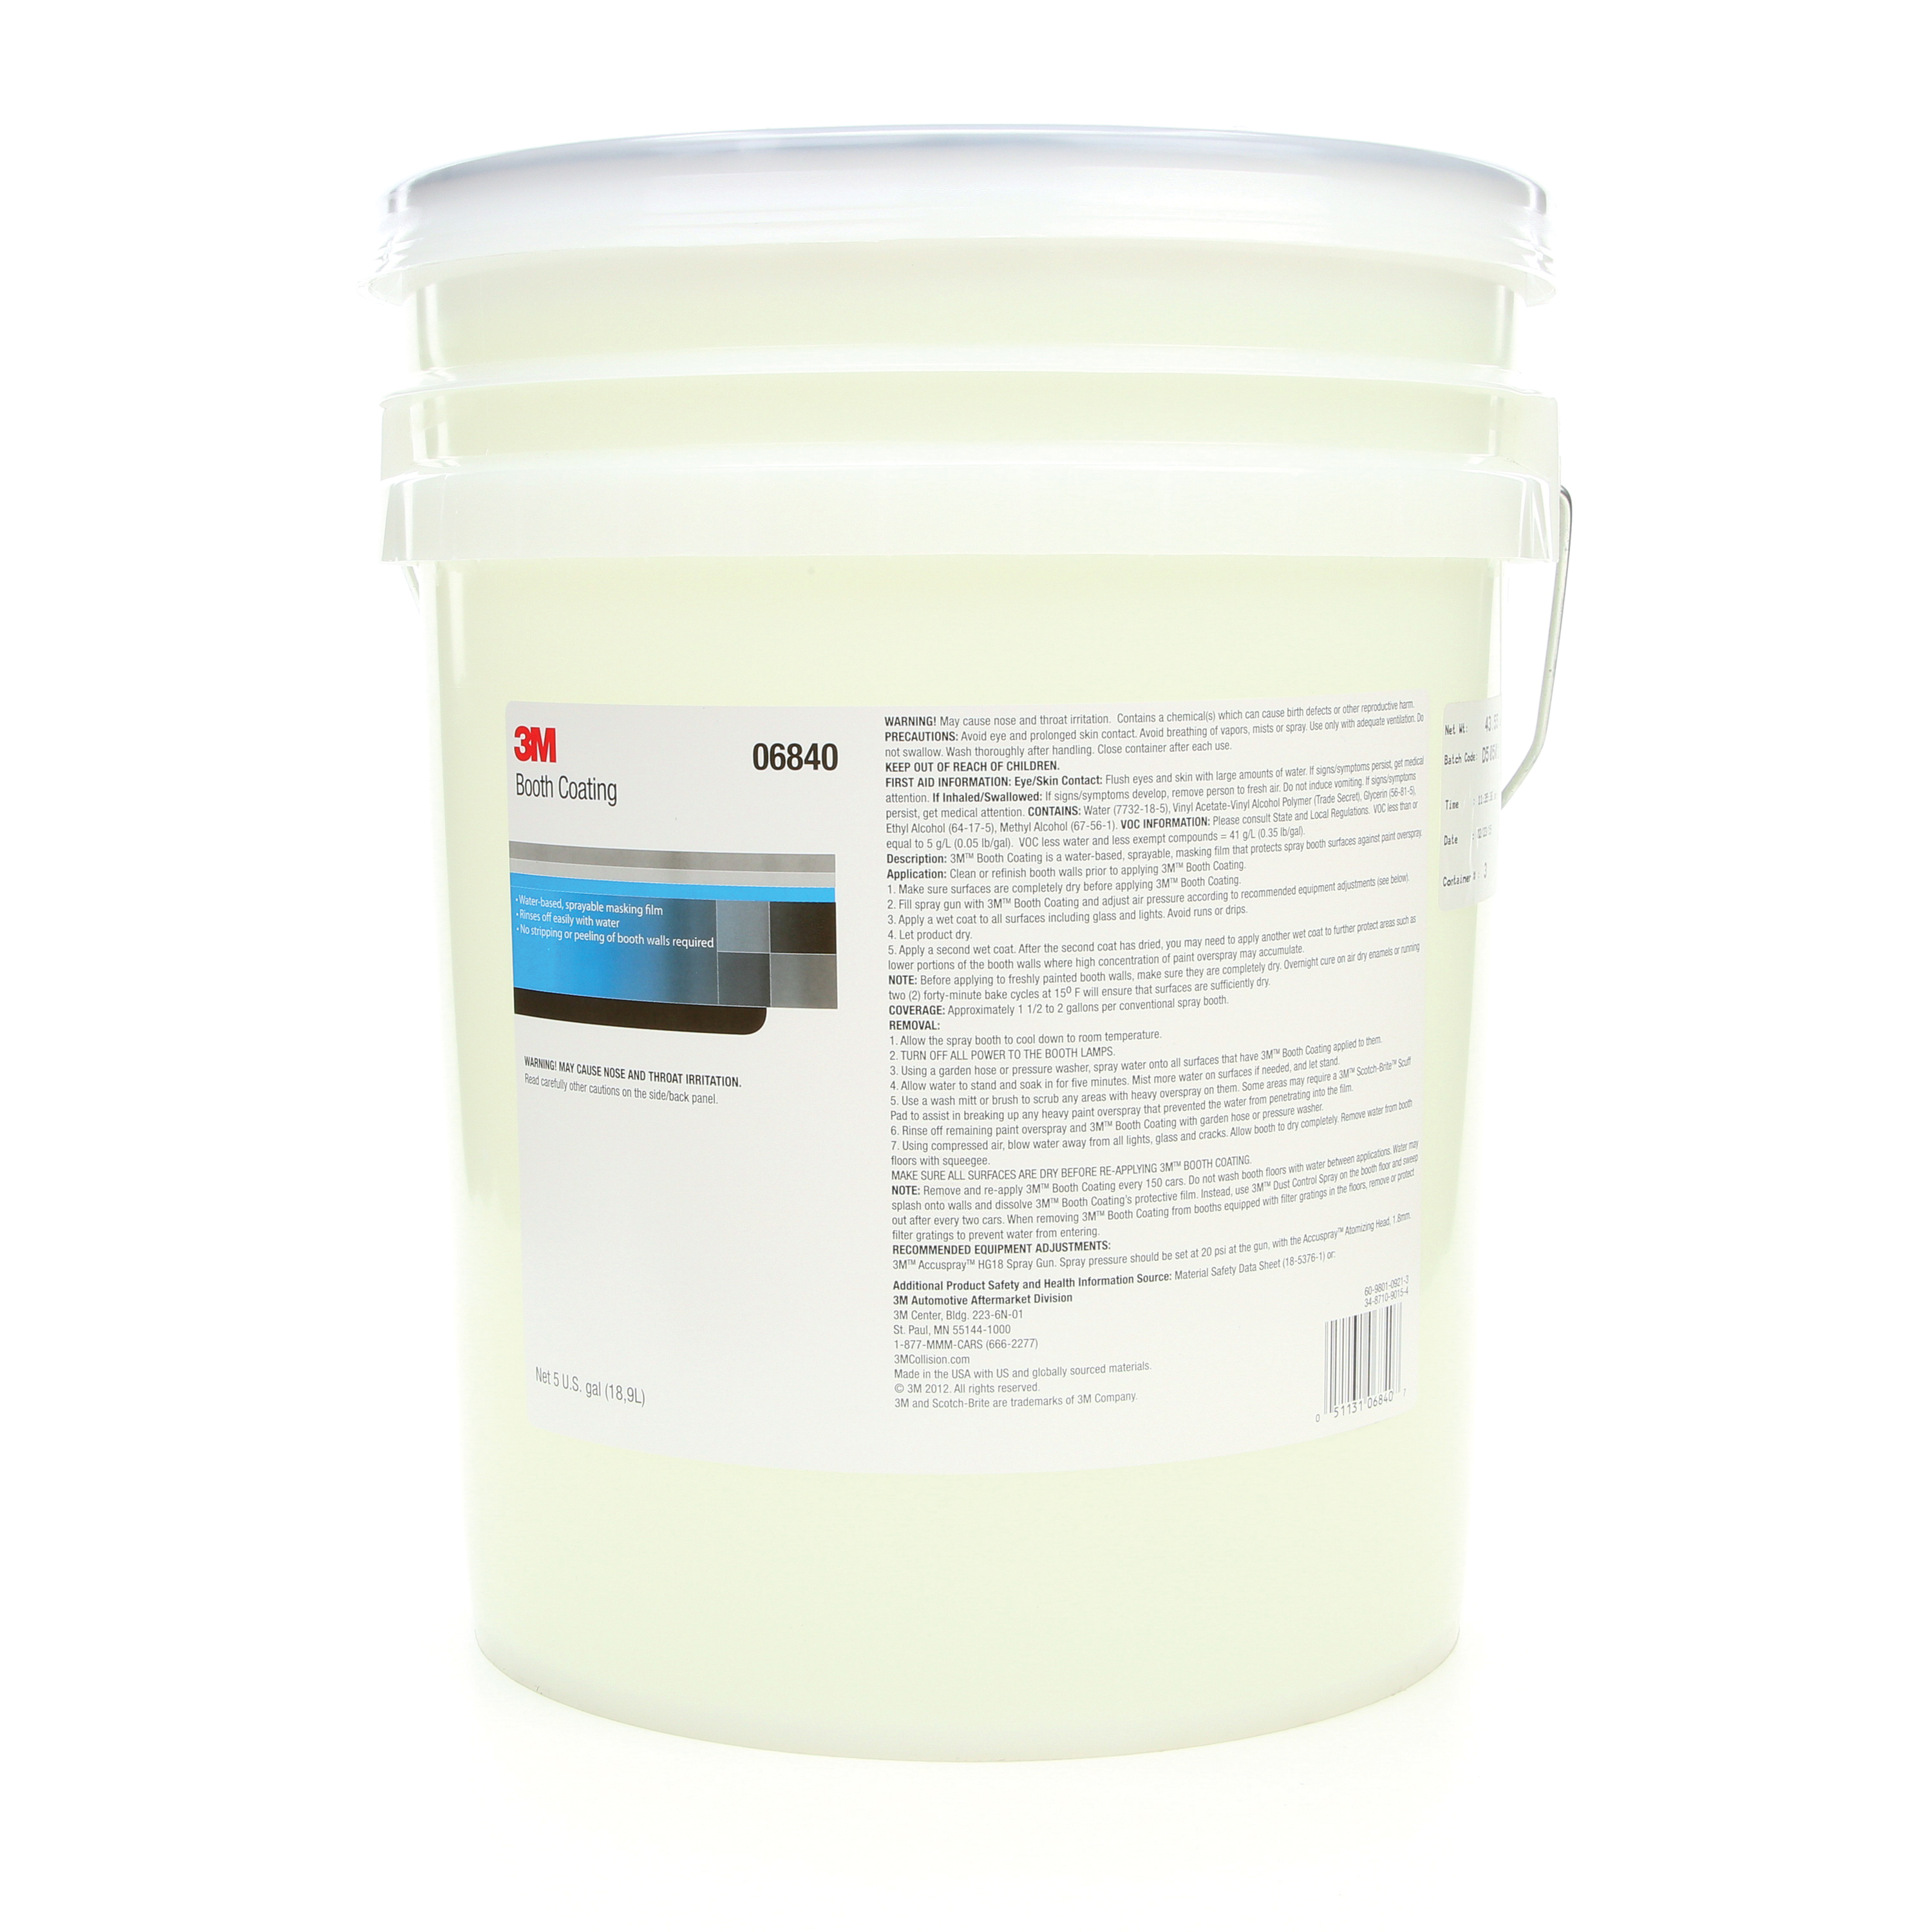 3M™ 051131-06840 Water Based Booth Coating, 5 gal Container, Liquid Form, Clear